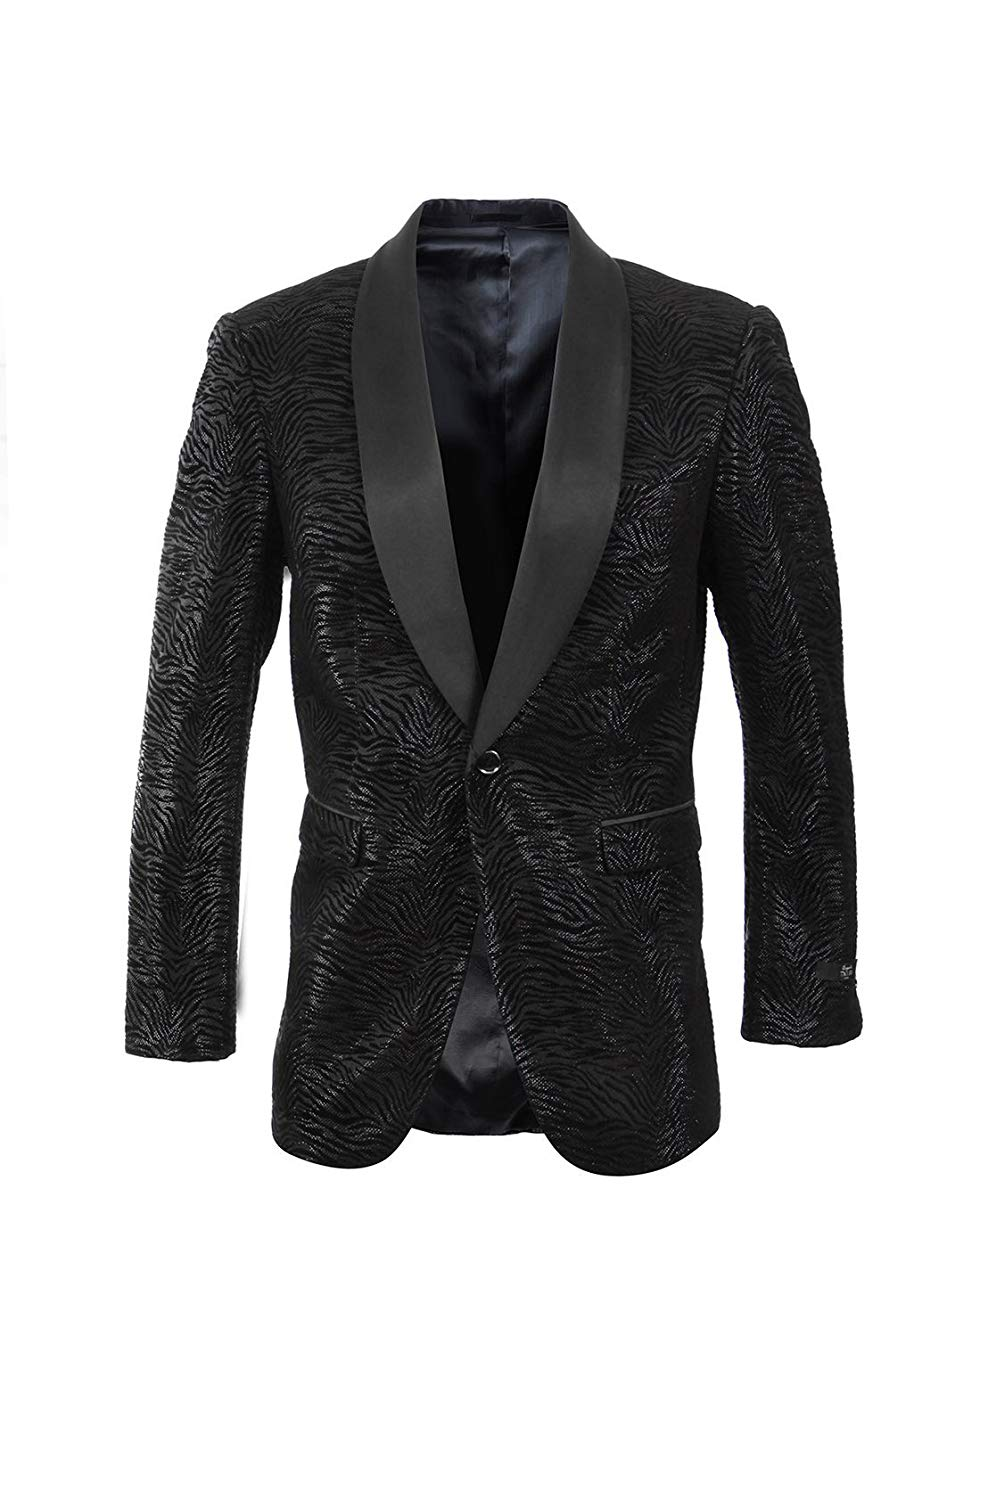 TAZIO Mens Jacket Modern Fit Satin Shawl Collar Patterned Blazer Dinner Jacket